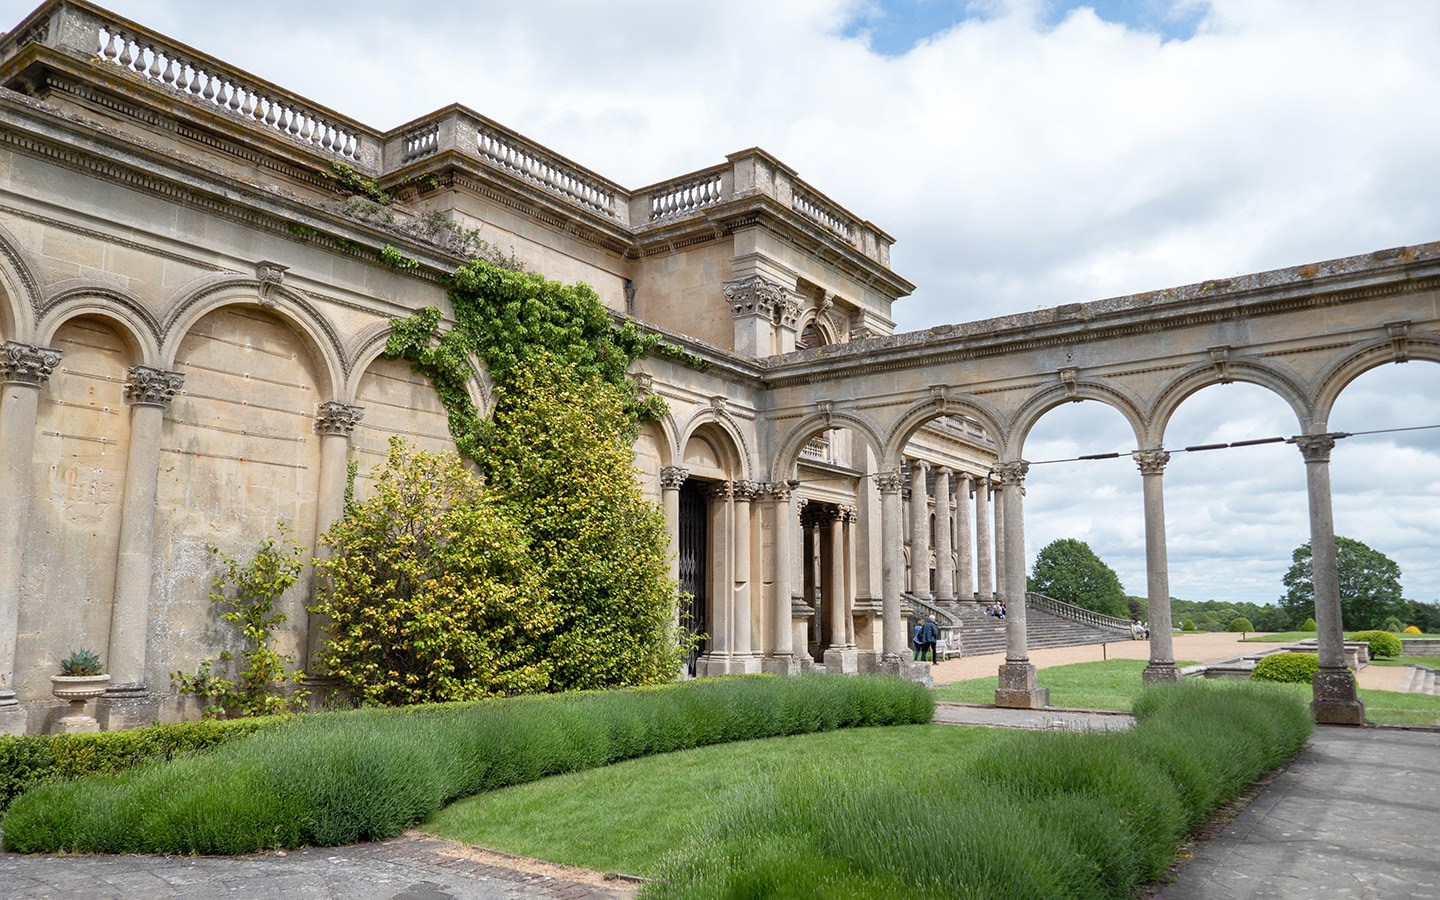 The ruined orangery at Witley Court in Worcestershire